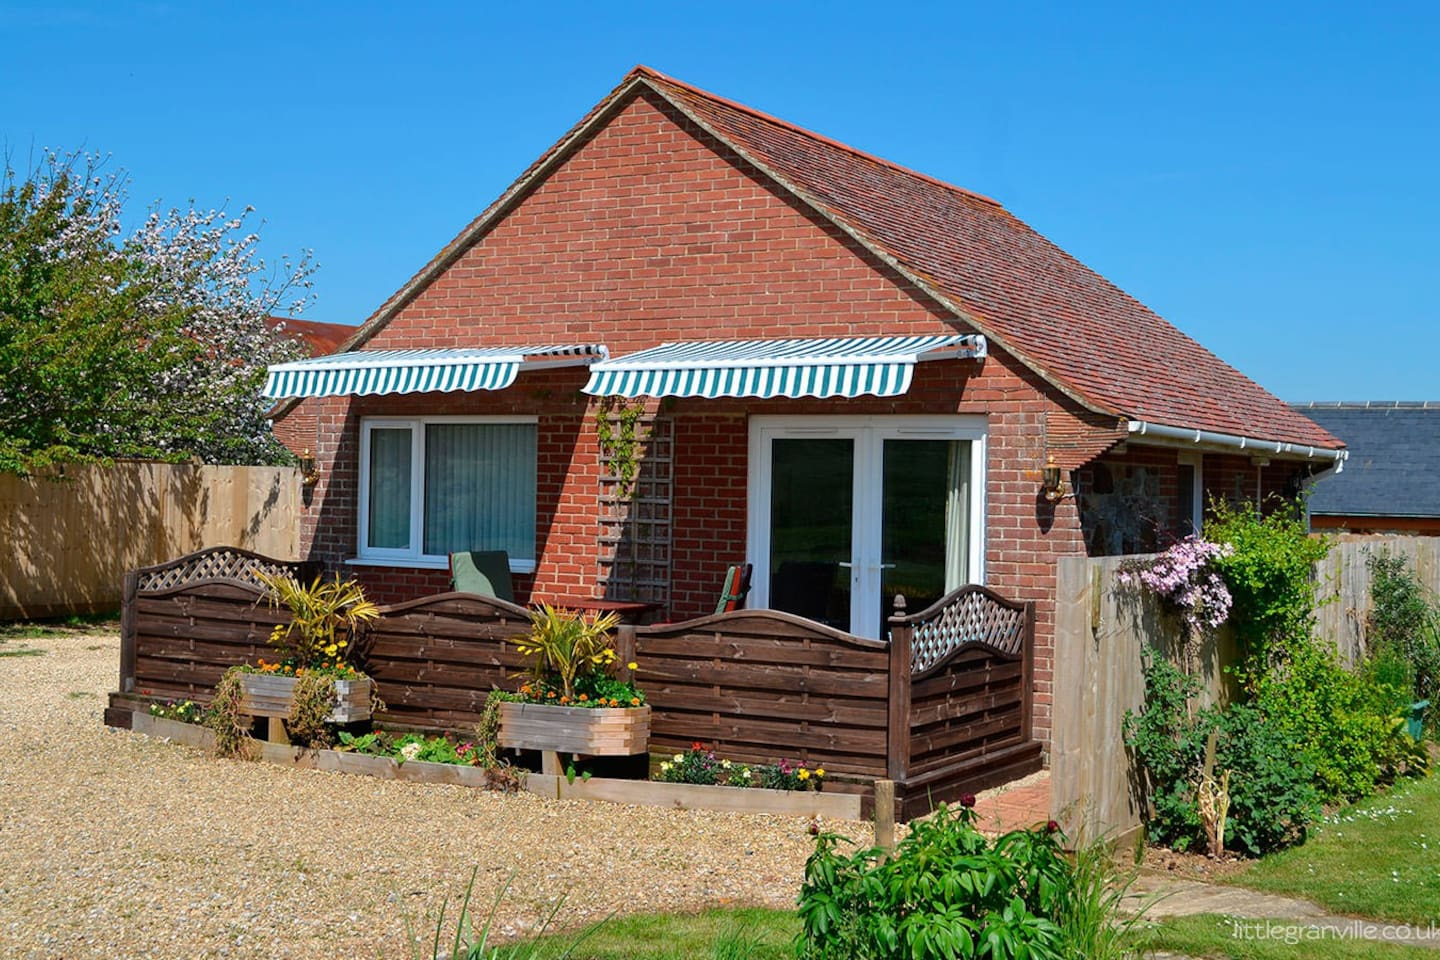 Little Granville Cottage - Countryside Self-catering cottage in a peaceful surrounding.